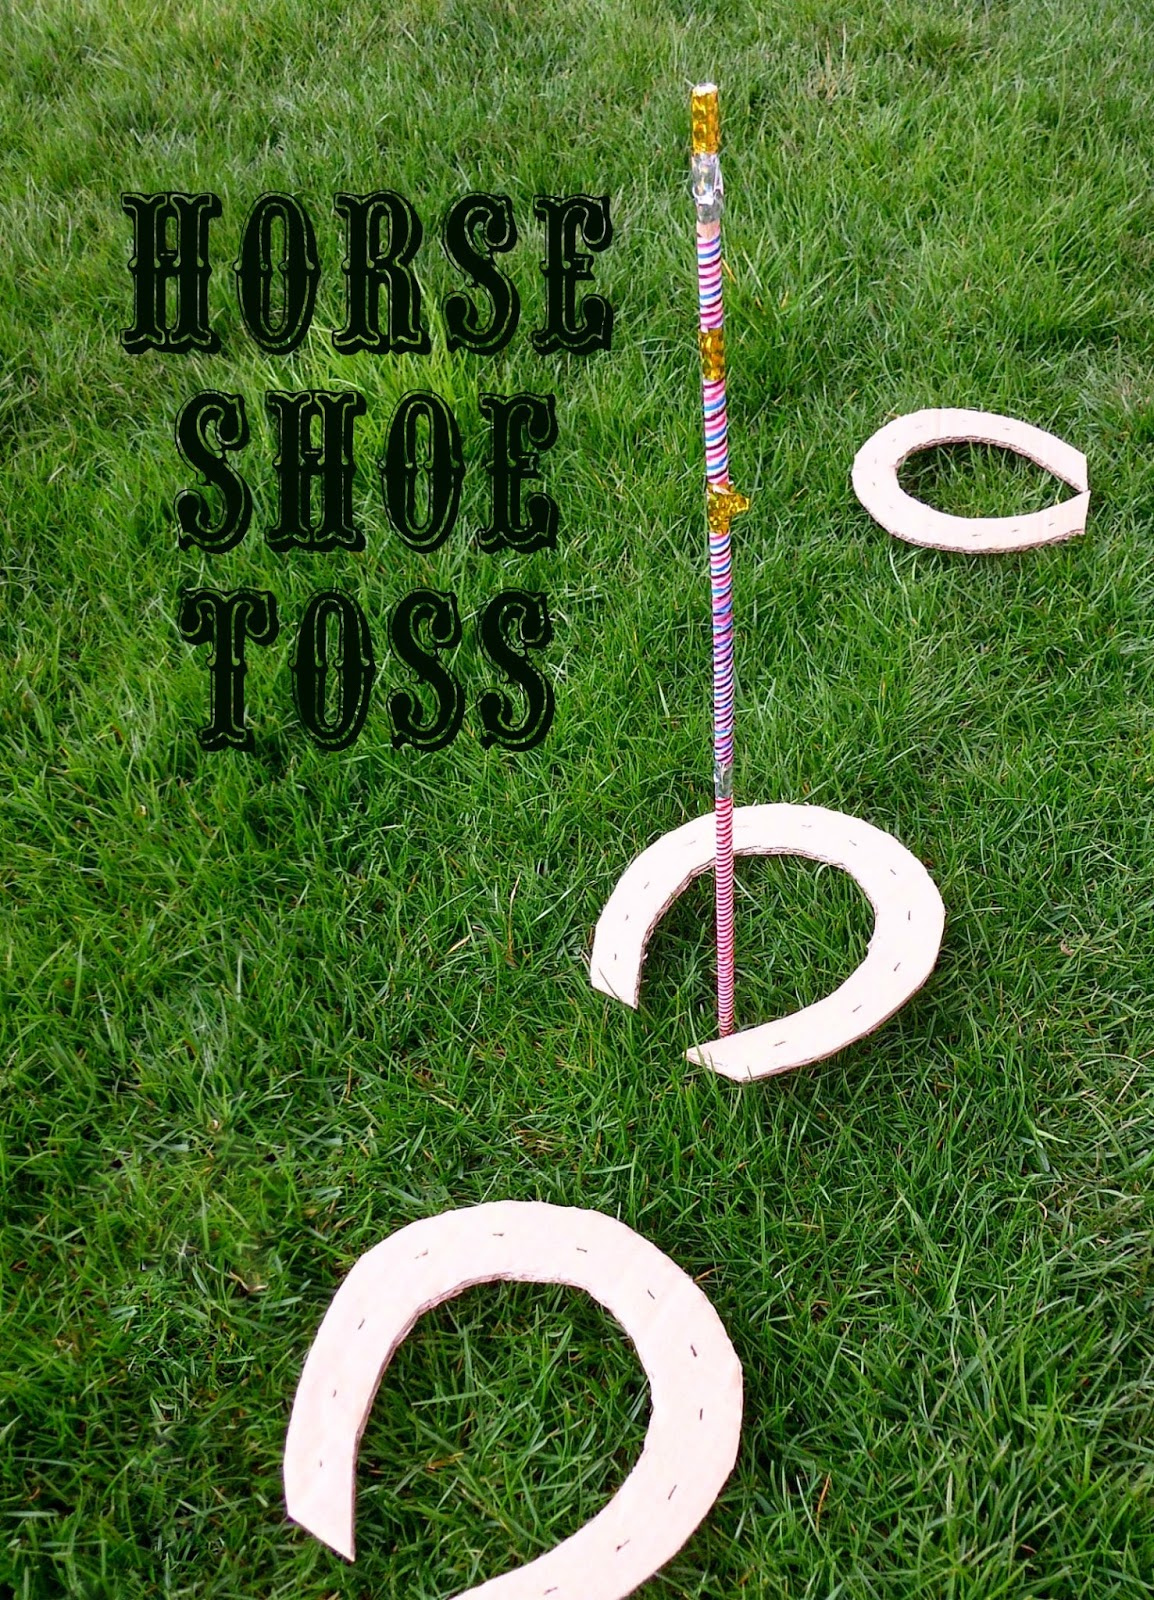 Mothers Messy Madness Wild West Horse Shoe Toss